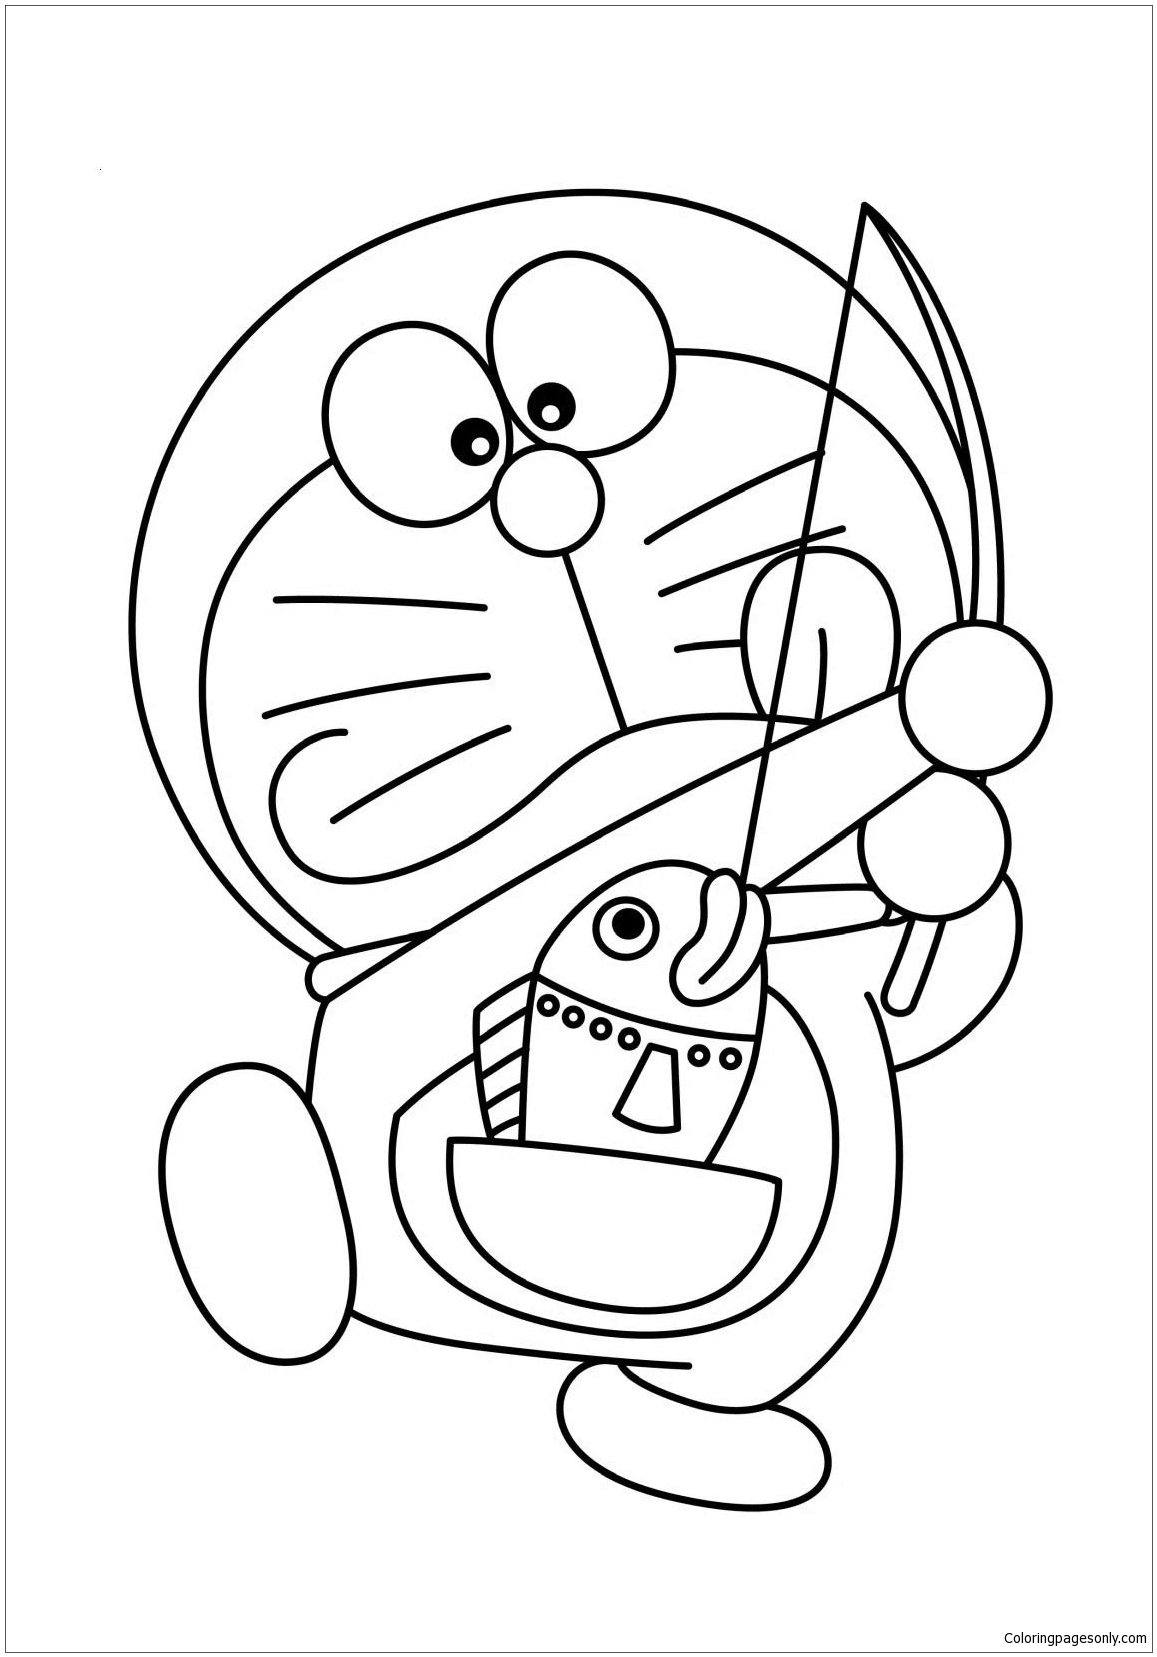 Doraemon Fishing From His Pocket Coloring Page